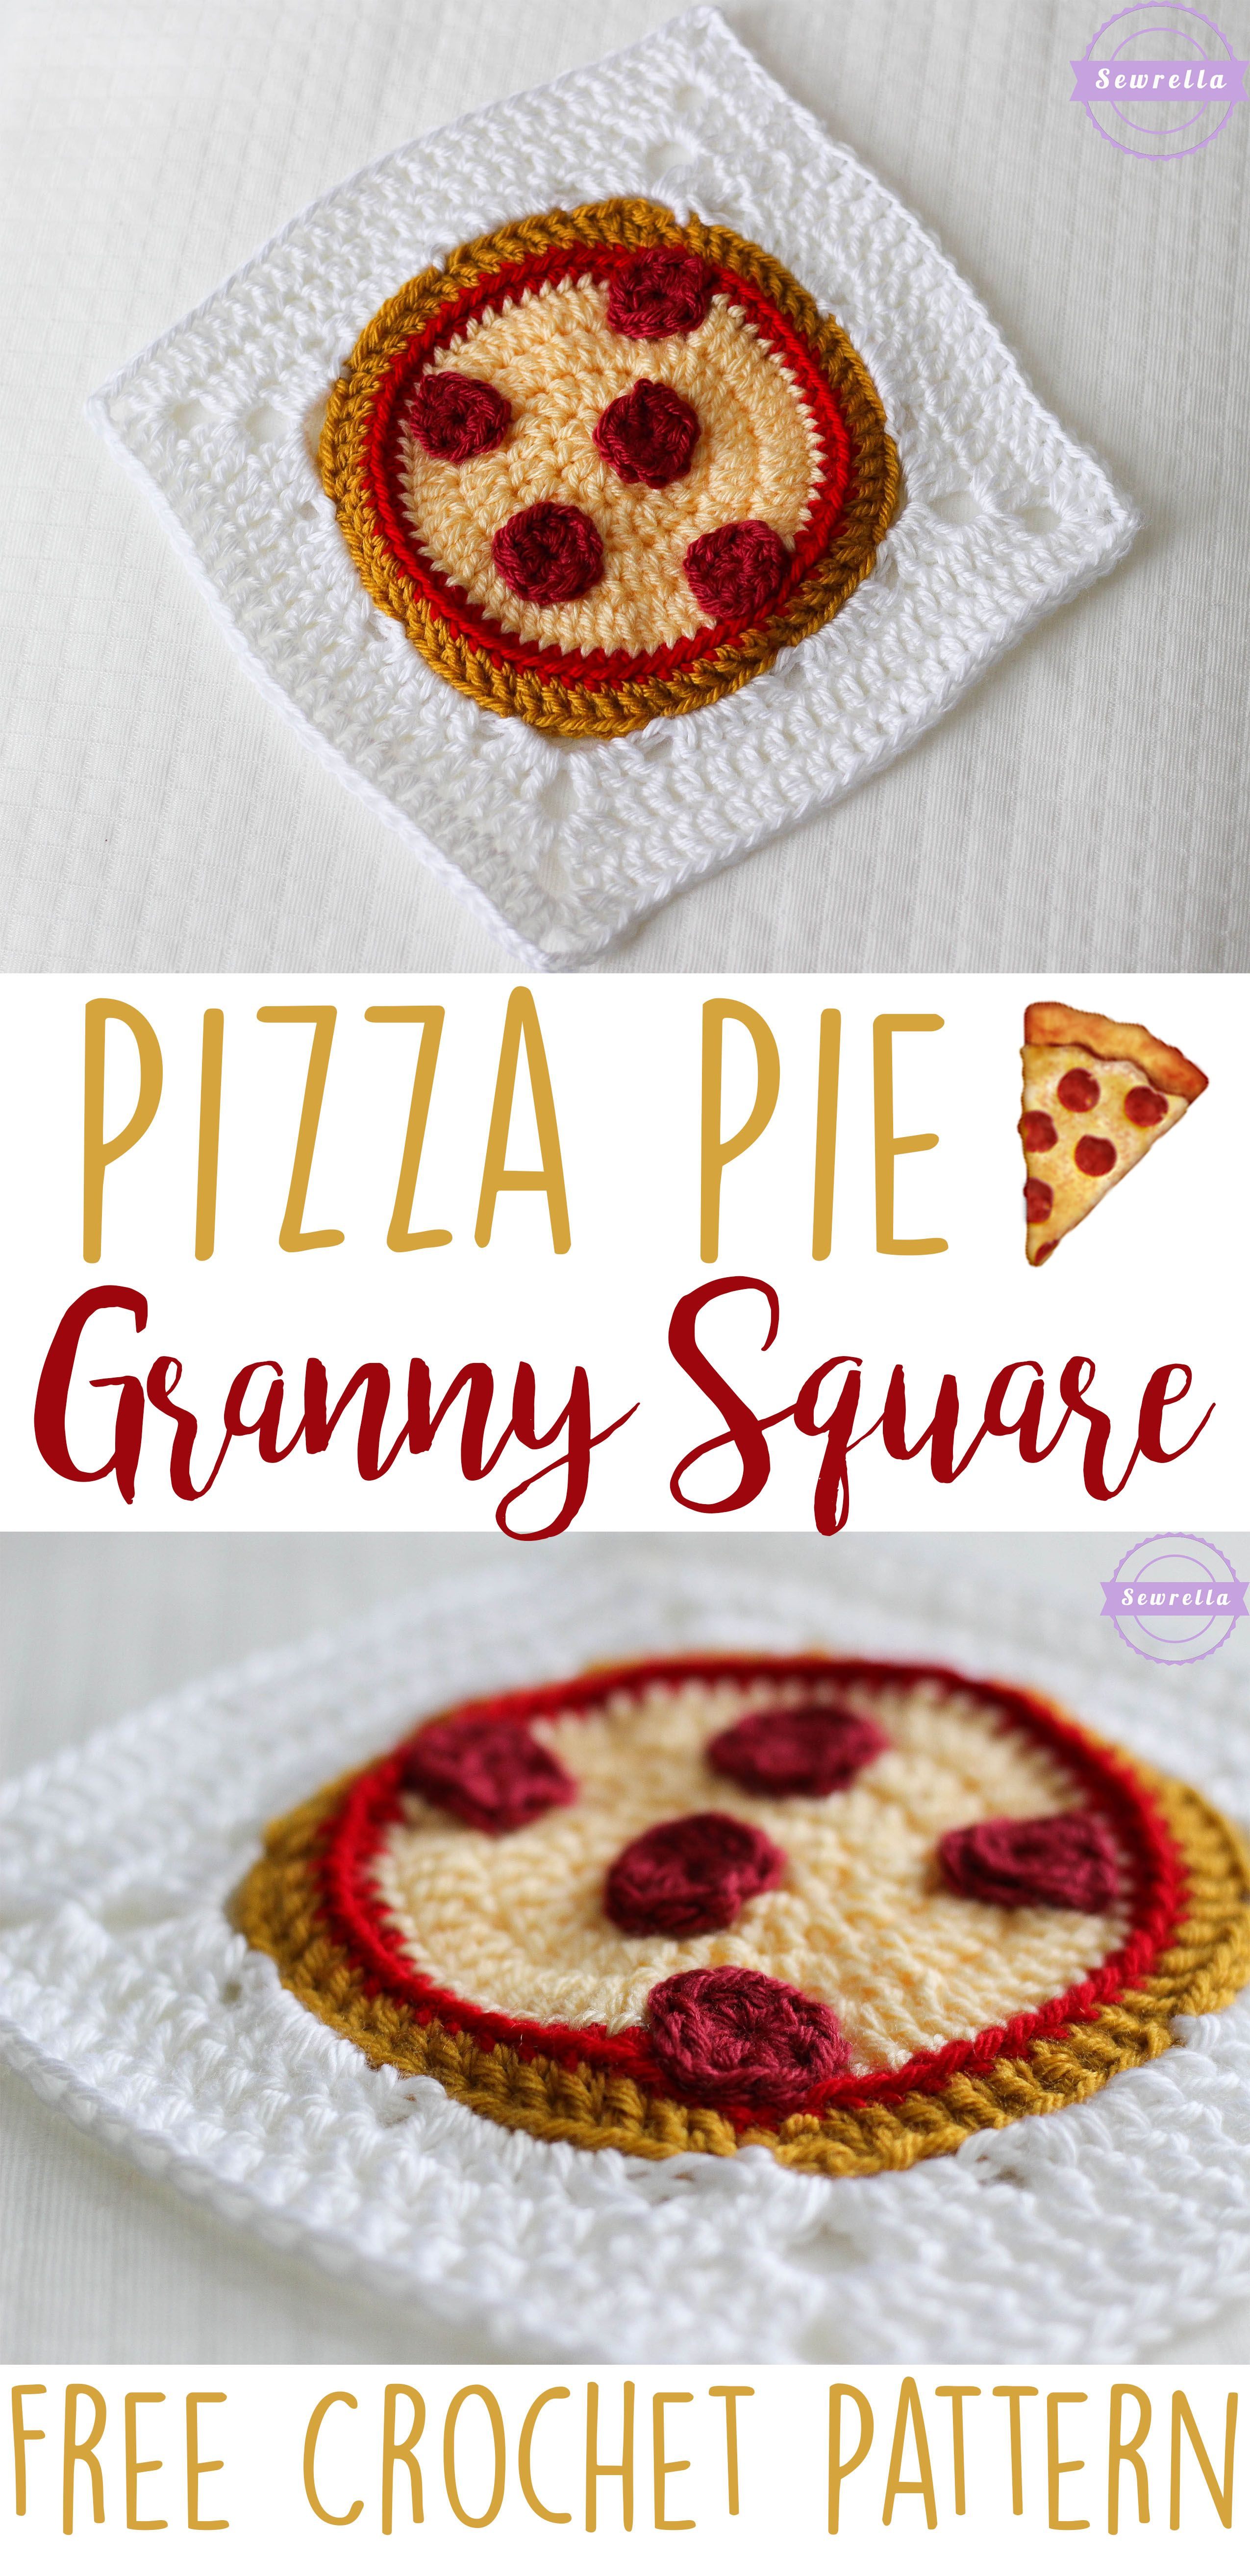 Pizza Pie Crochet Granny Square | Free Pattern from Sewrella ...